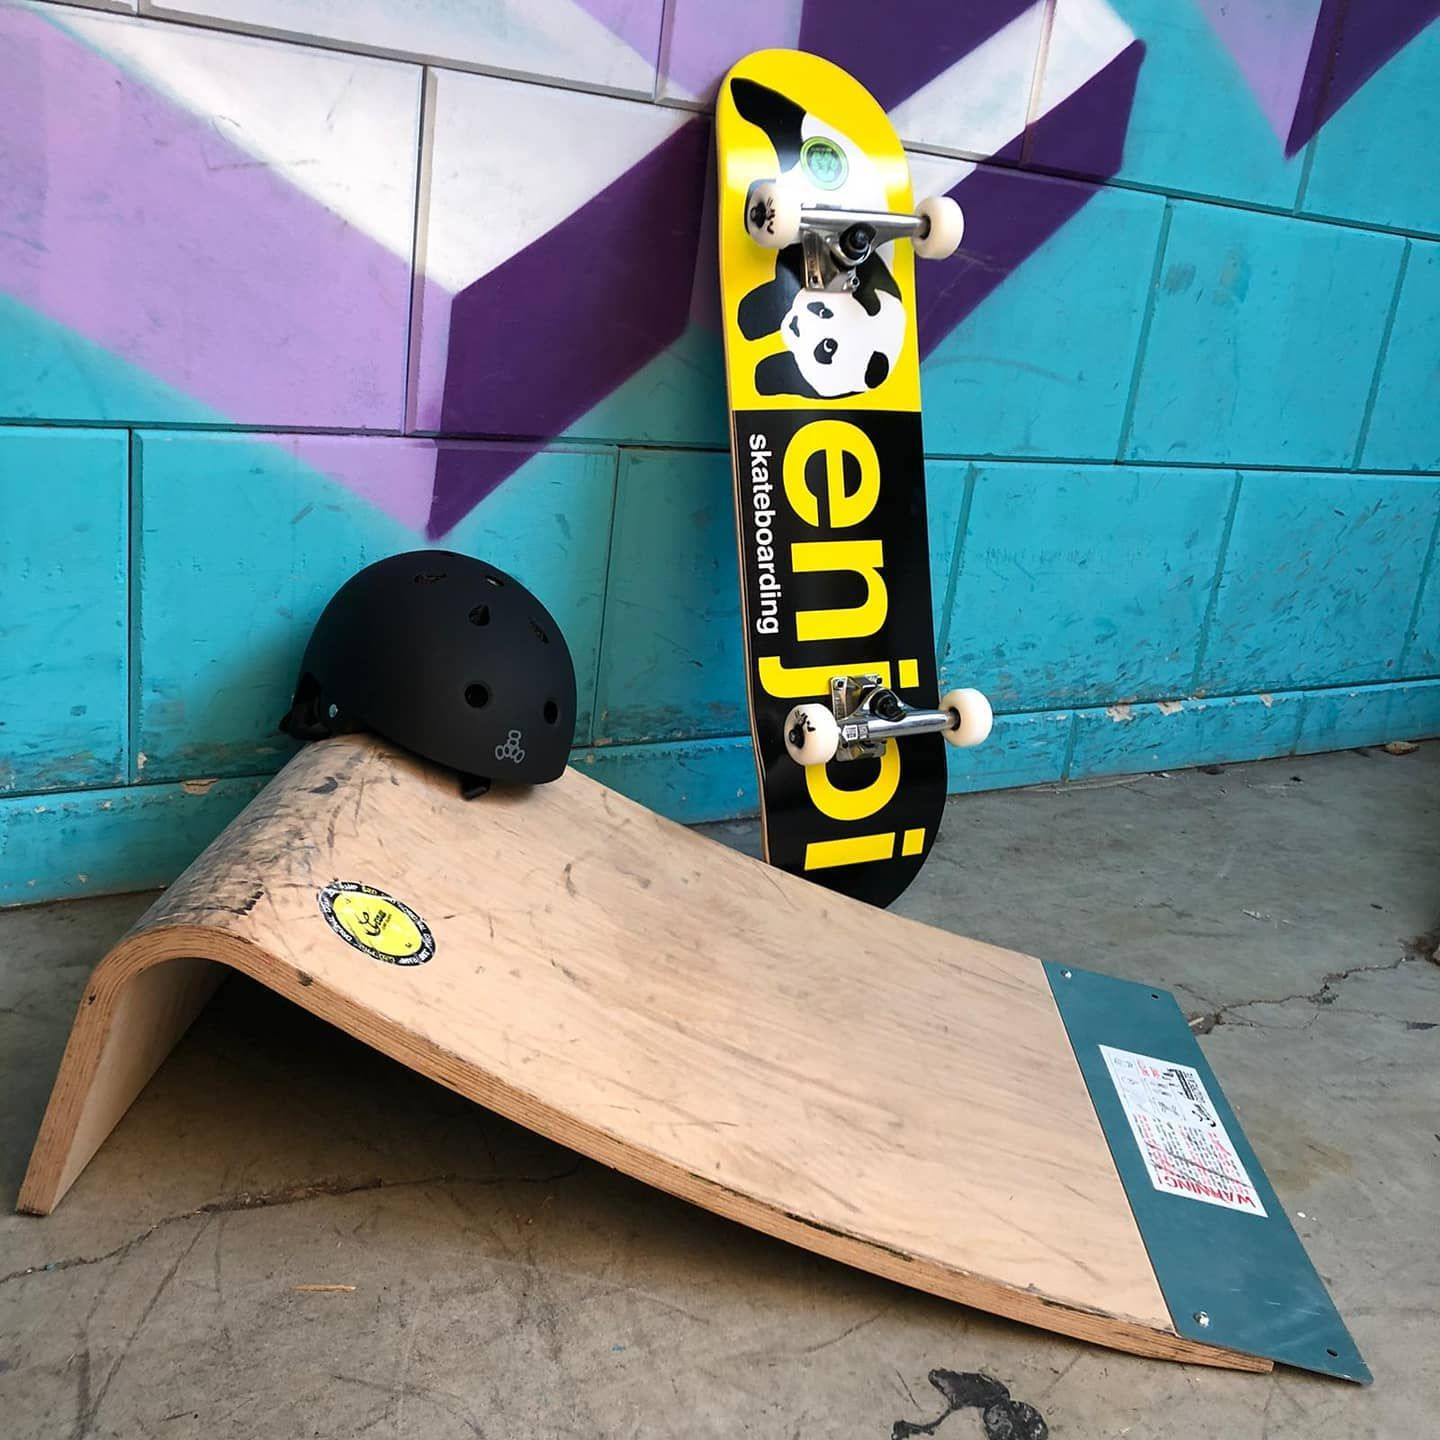 Graw Skate Ramps So Much Fun You Need This At Home Right Well Whats Stopping You Enjoi Skateboardingisfun Enjoiskateboards Graw Skatepark Skat In 2020